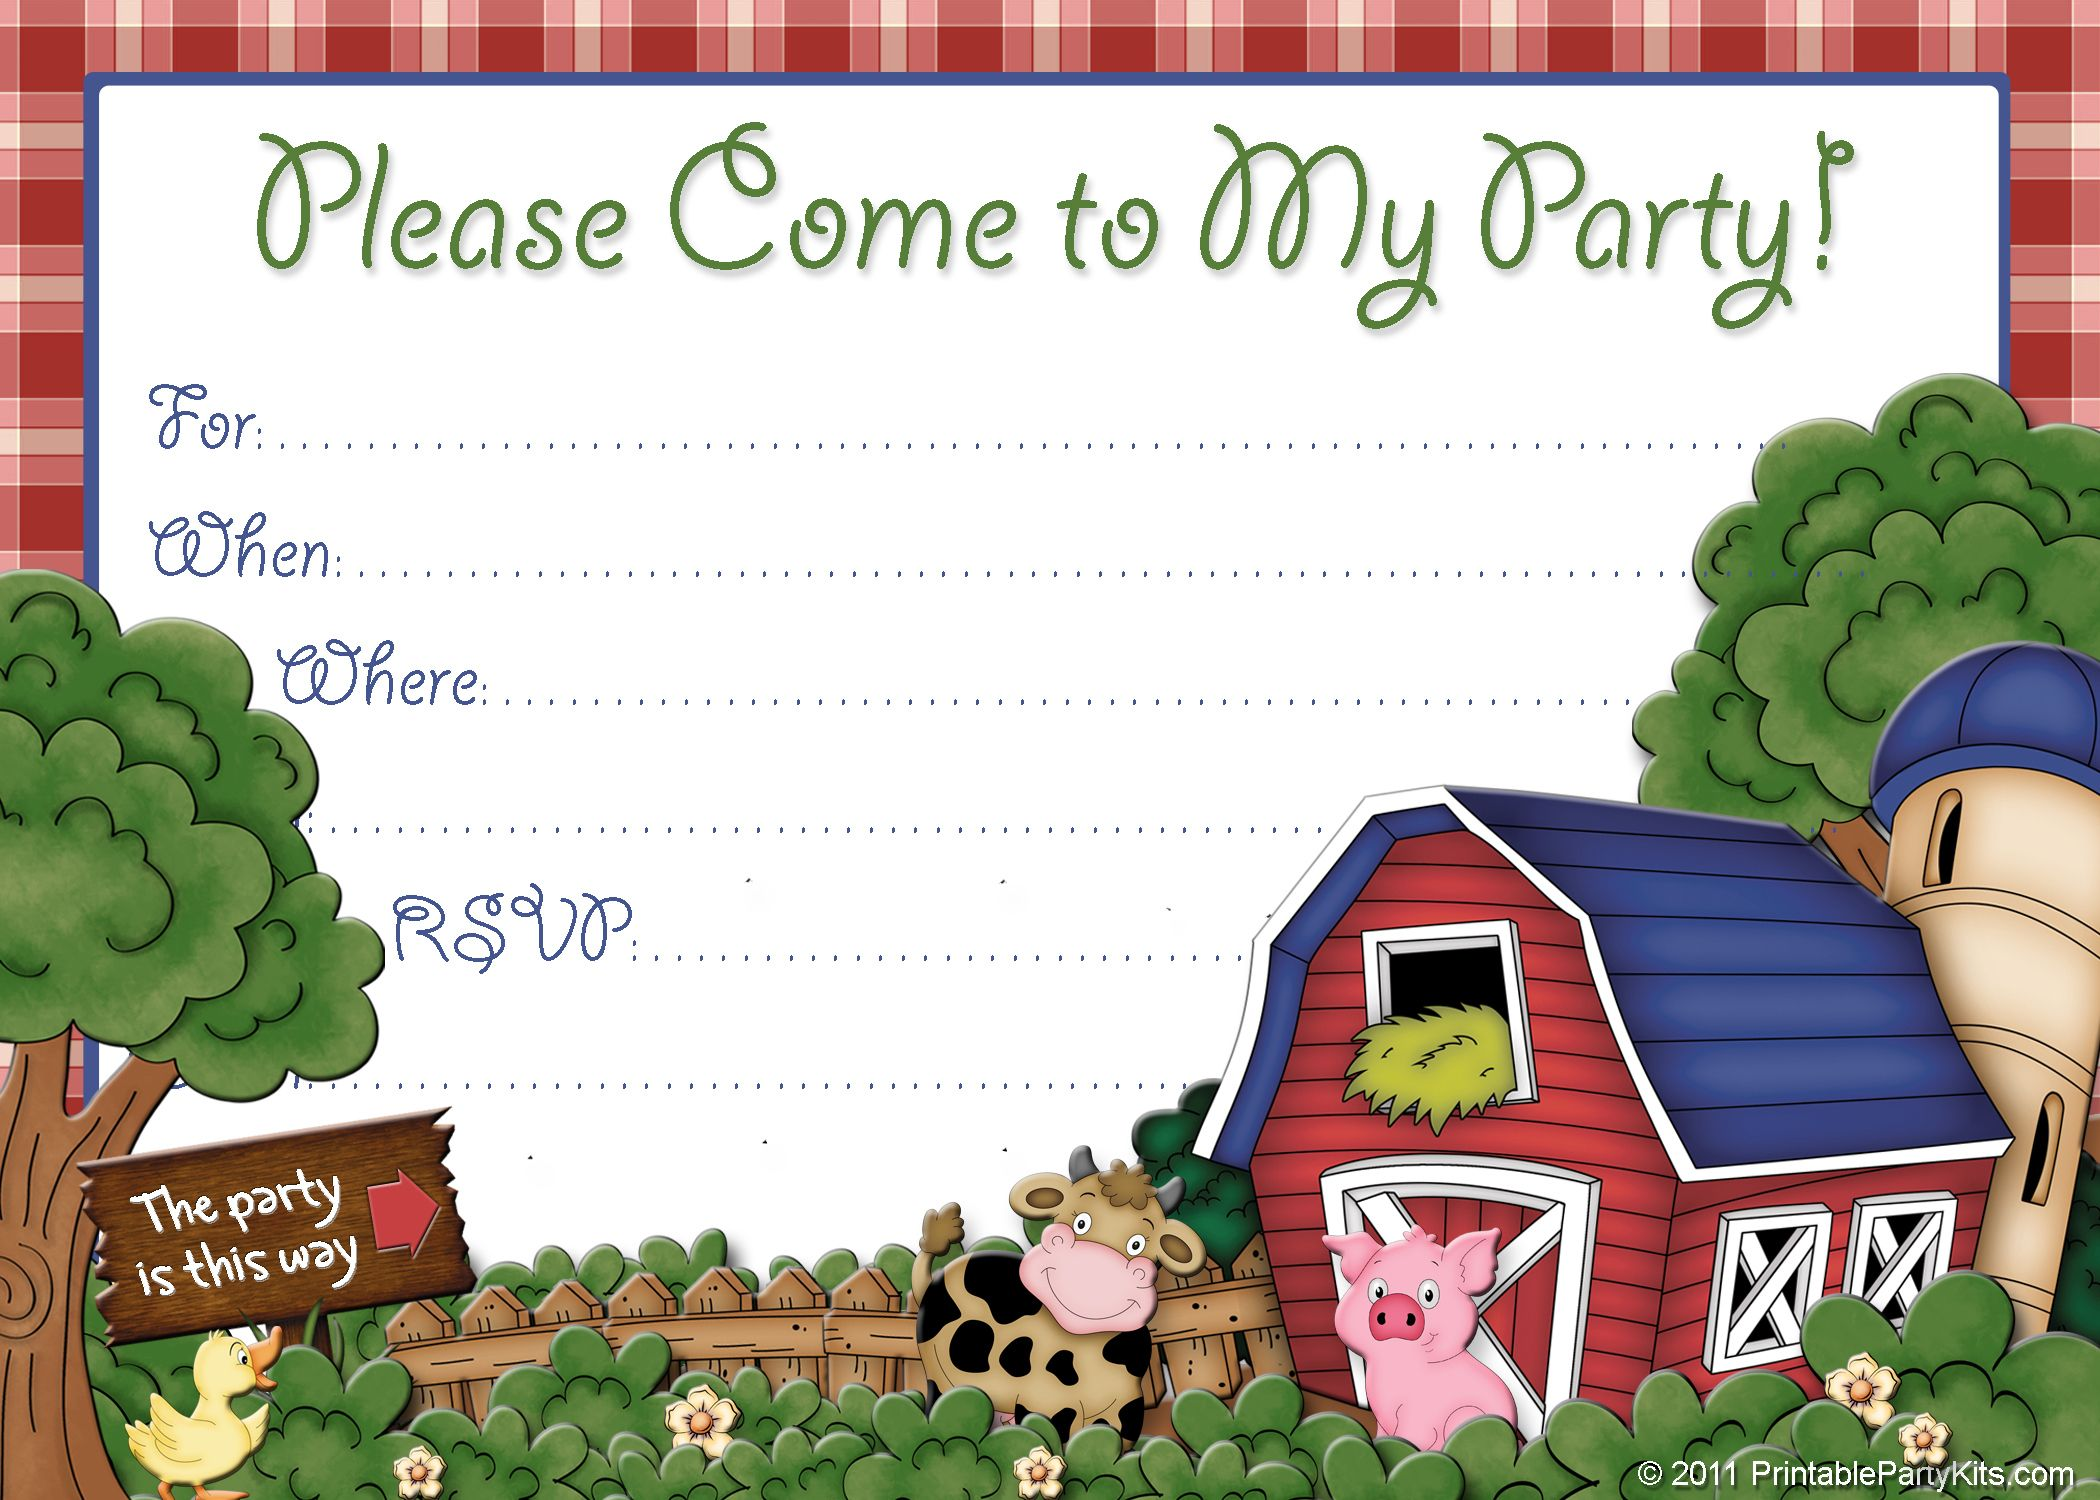 picture relating to Free Printable Boy Birthday Invitations named Cost-free Printable Barnyard Farm Invitation Template. Free of charge